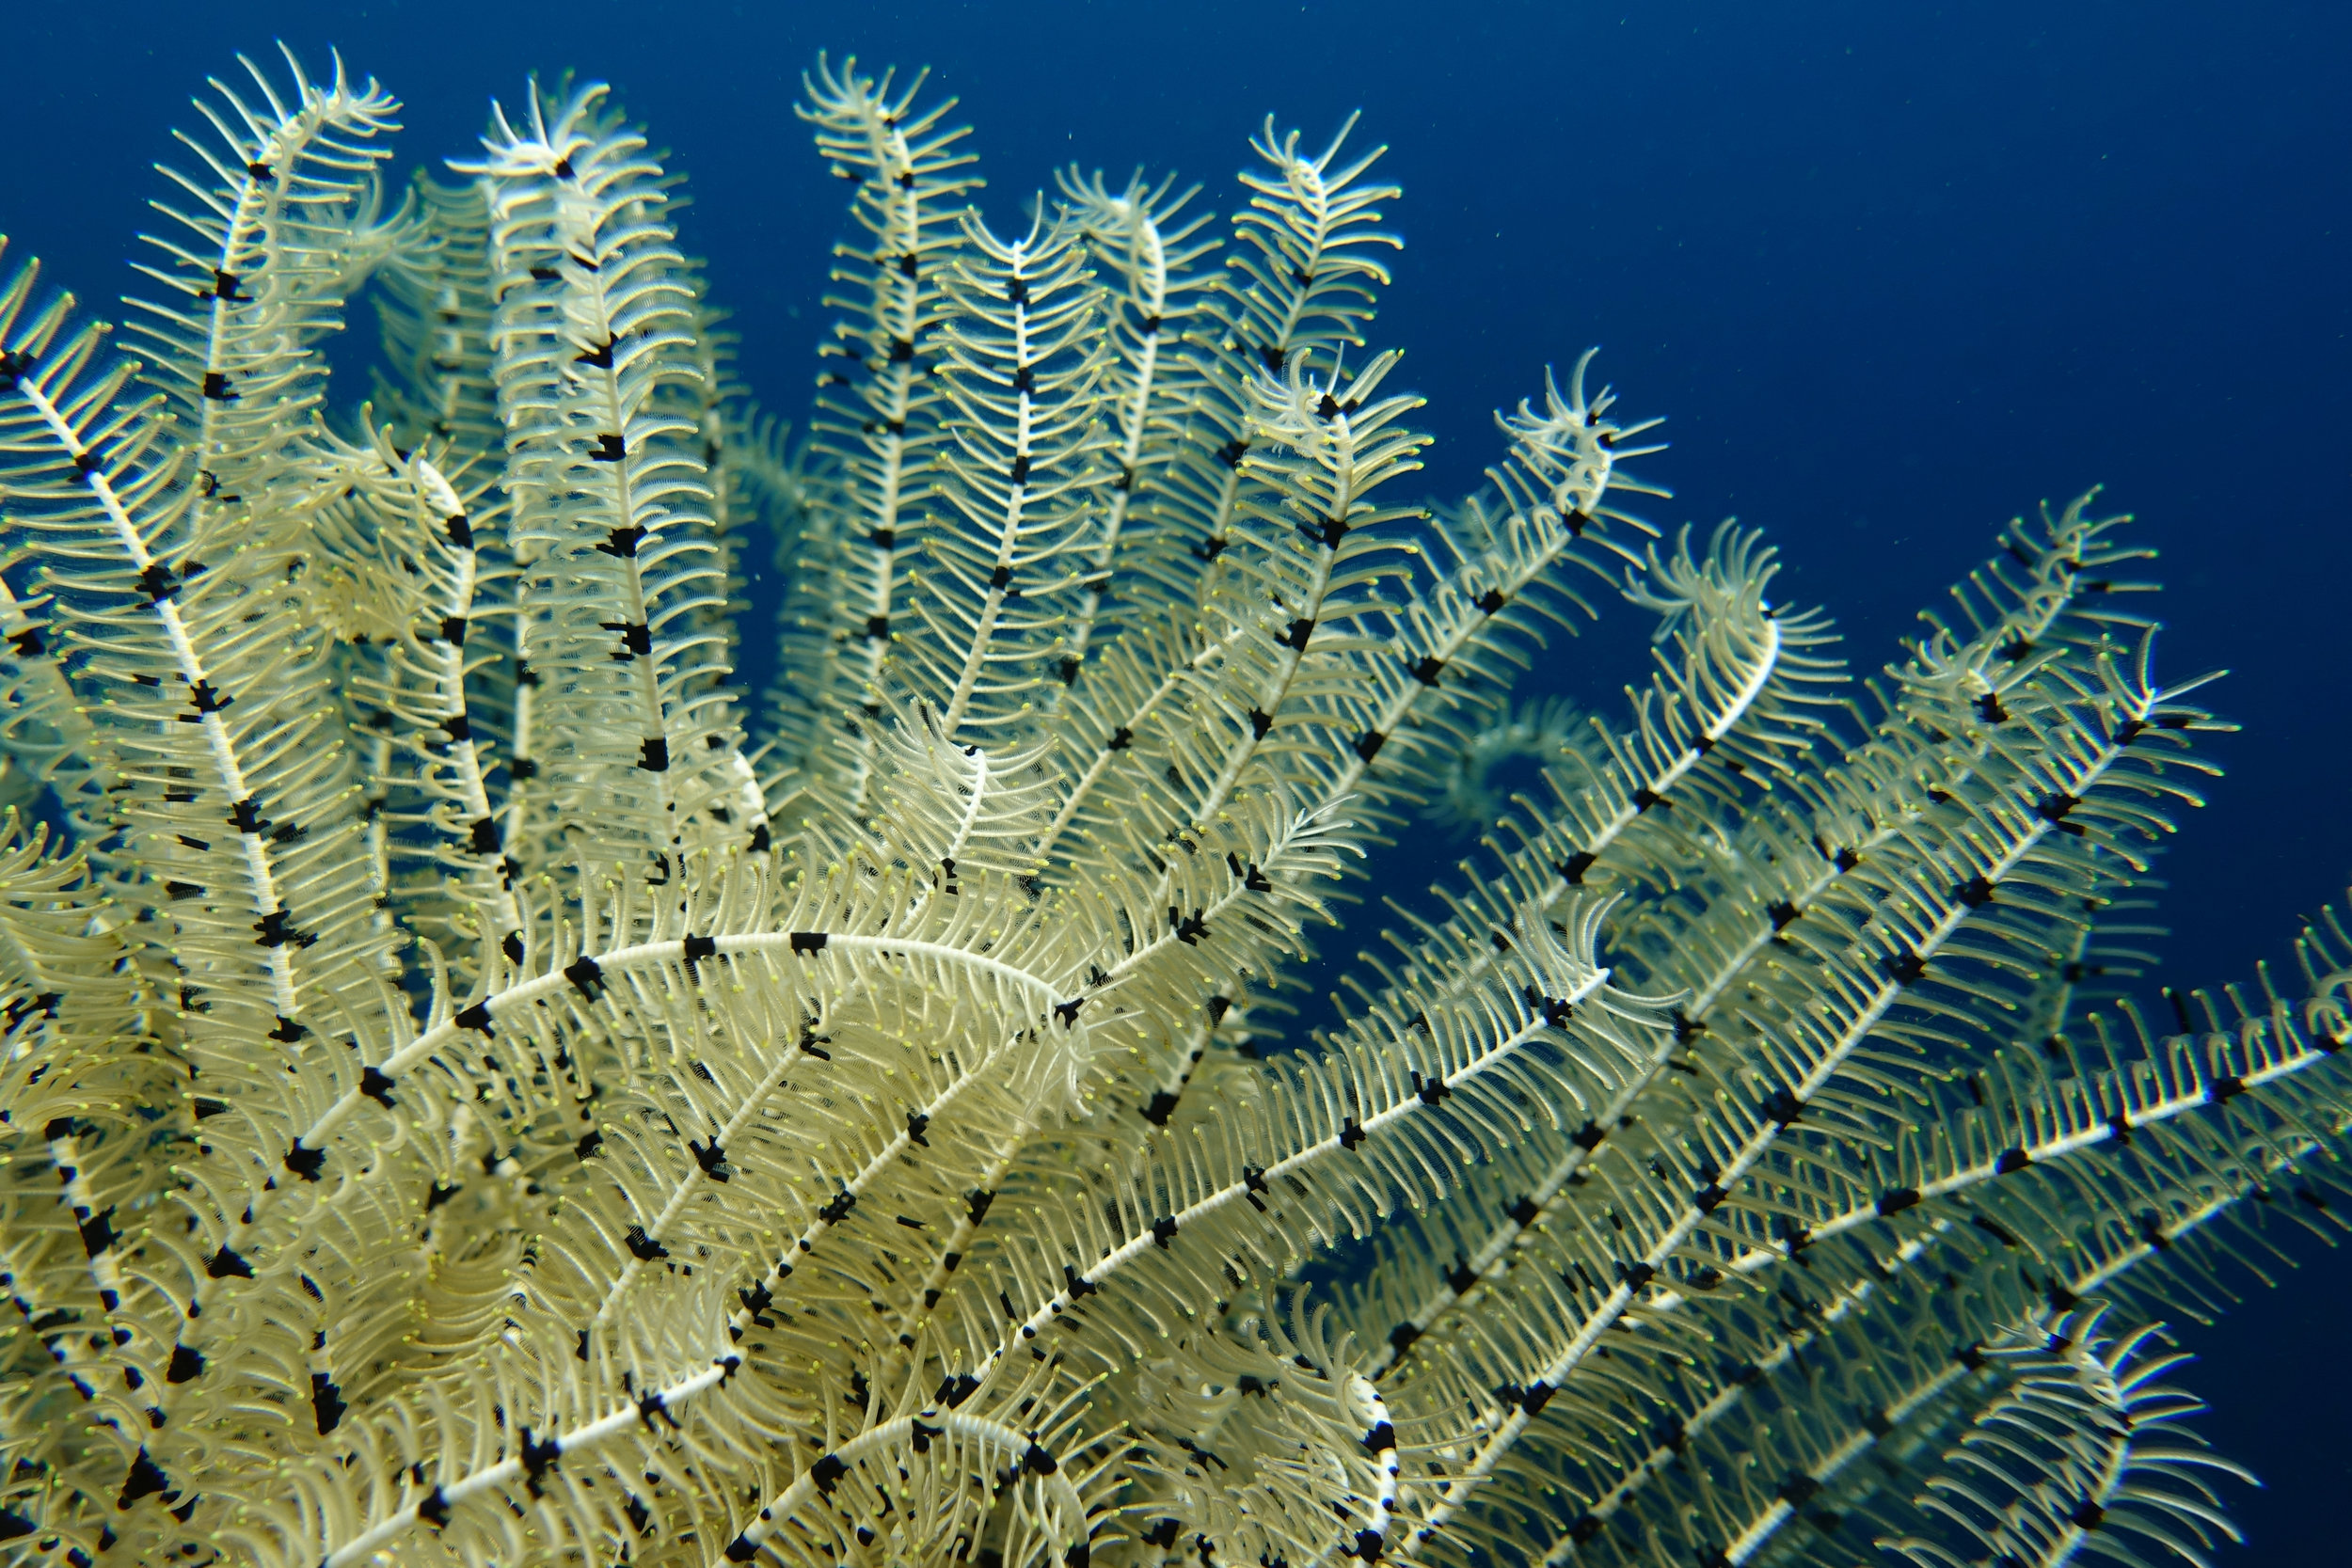 feather star 1249.jpg